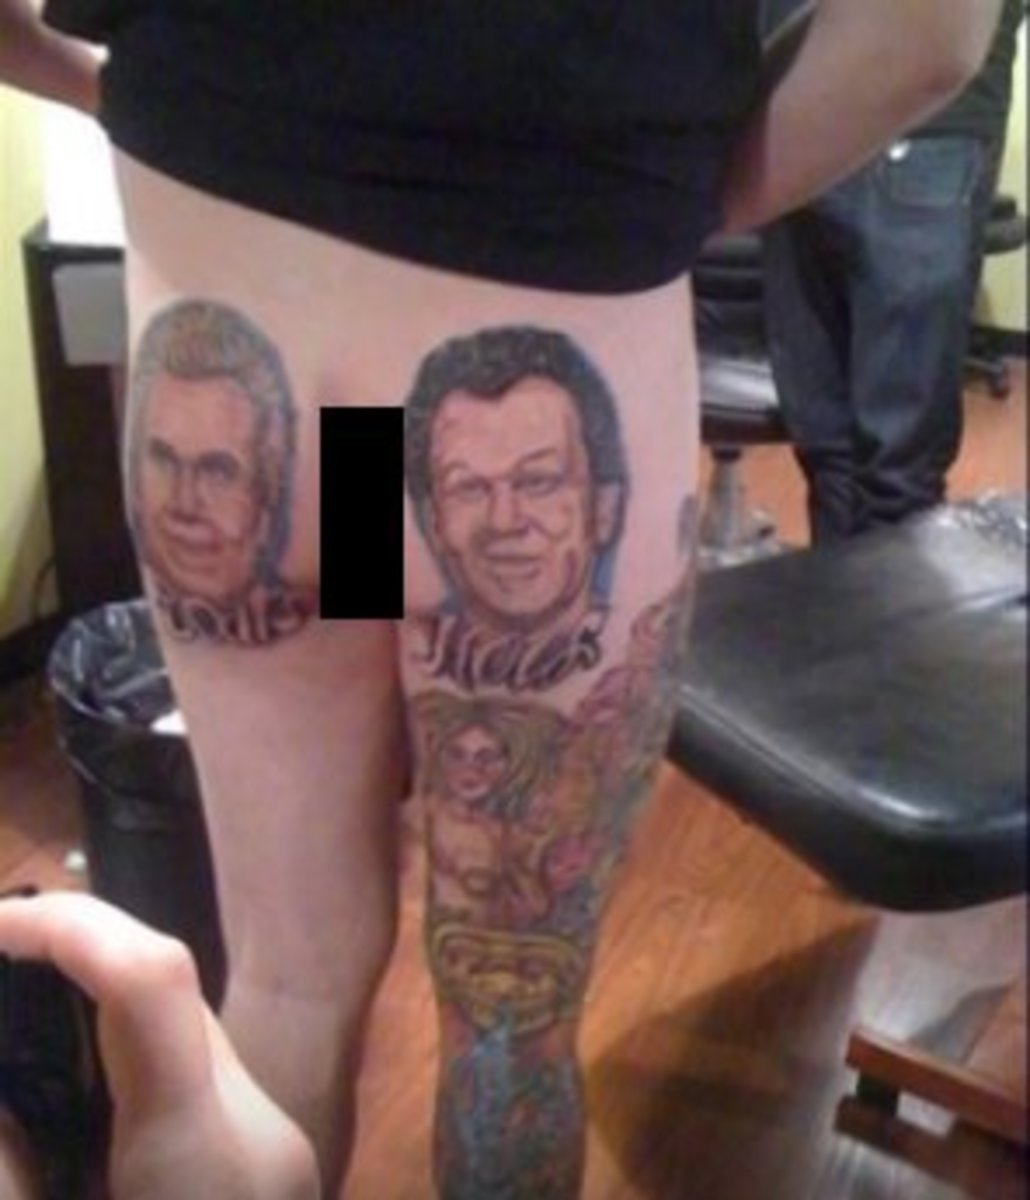 Now that's a tattoo that will spark a conversation.